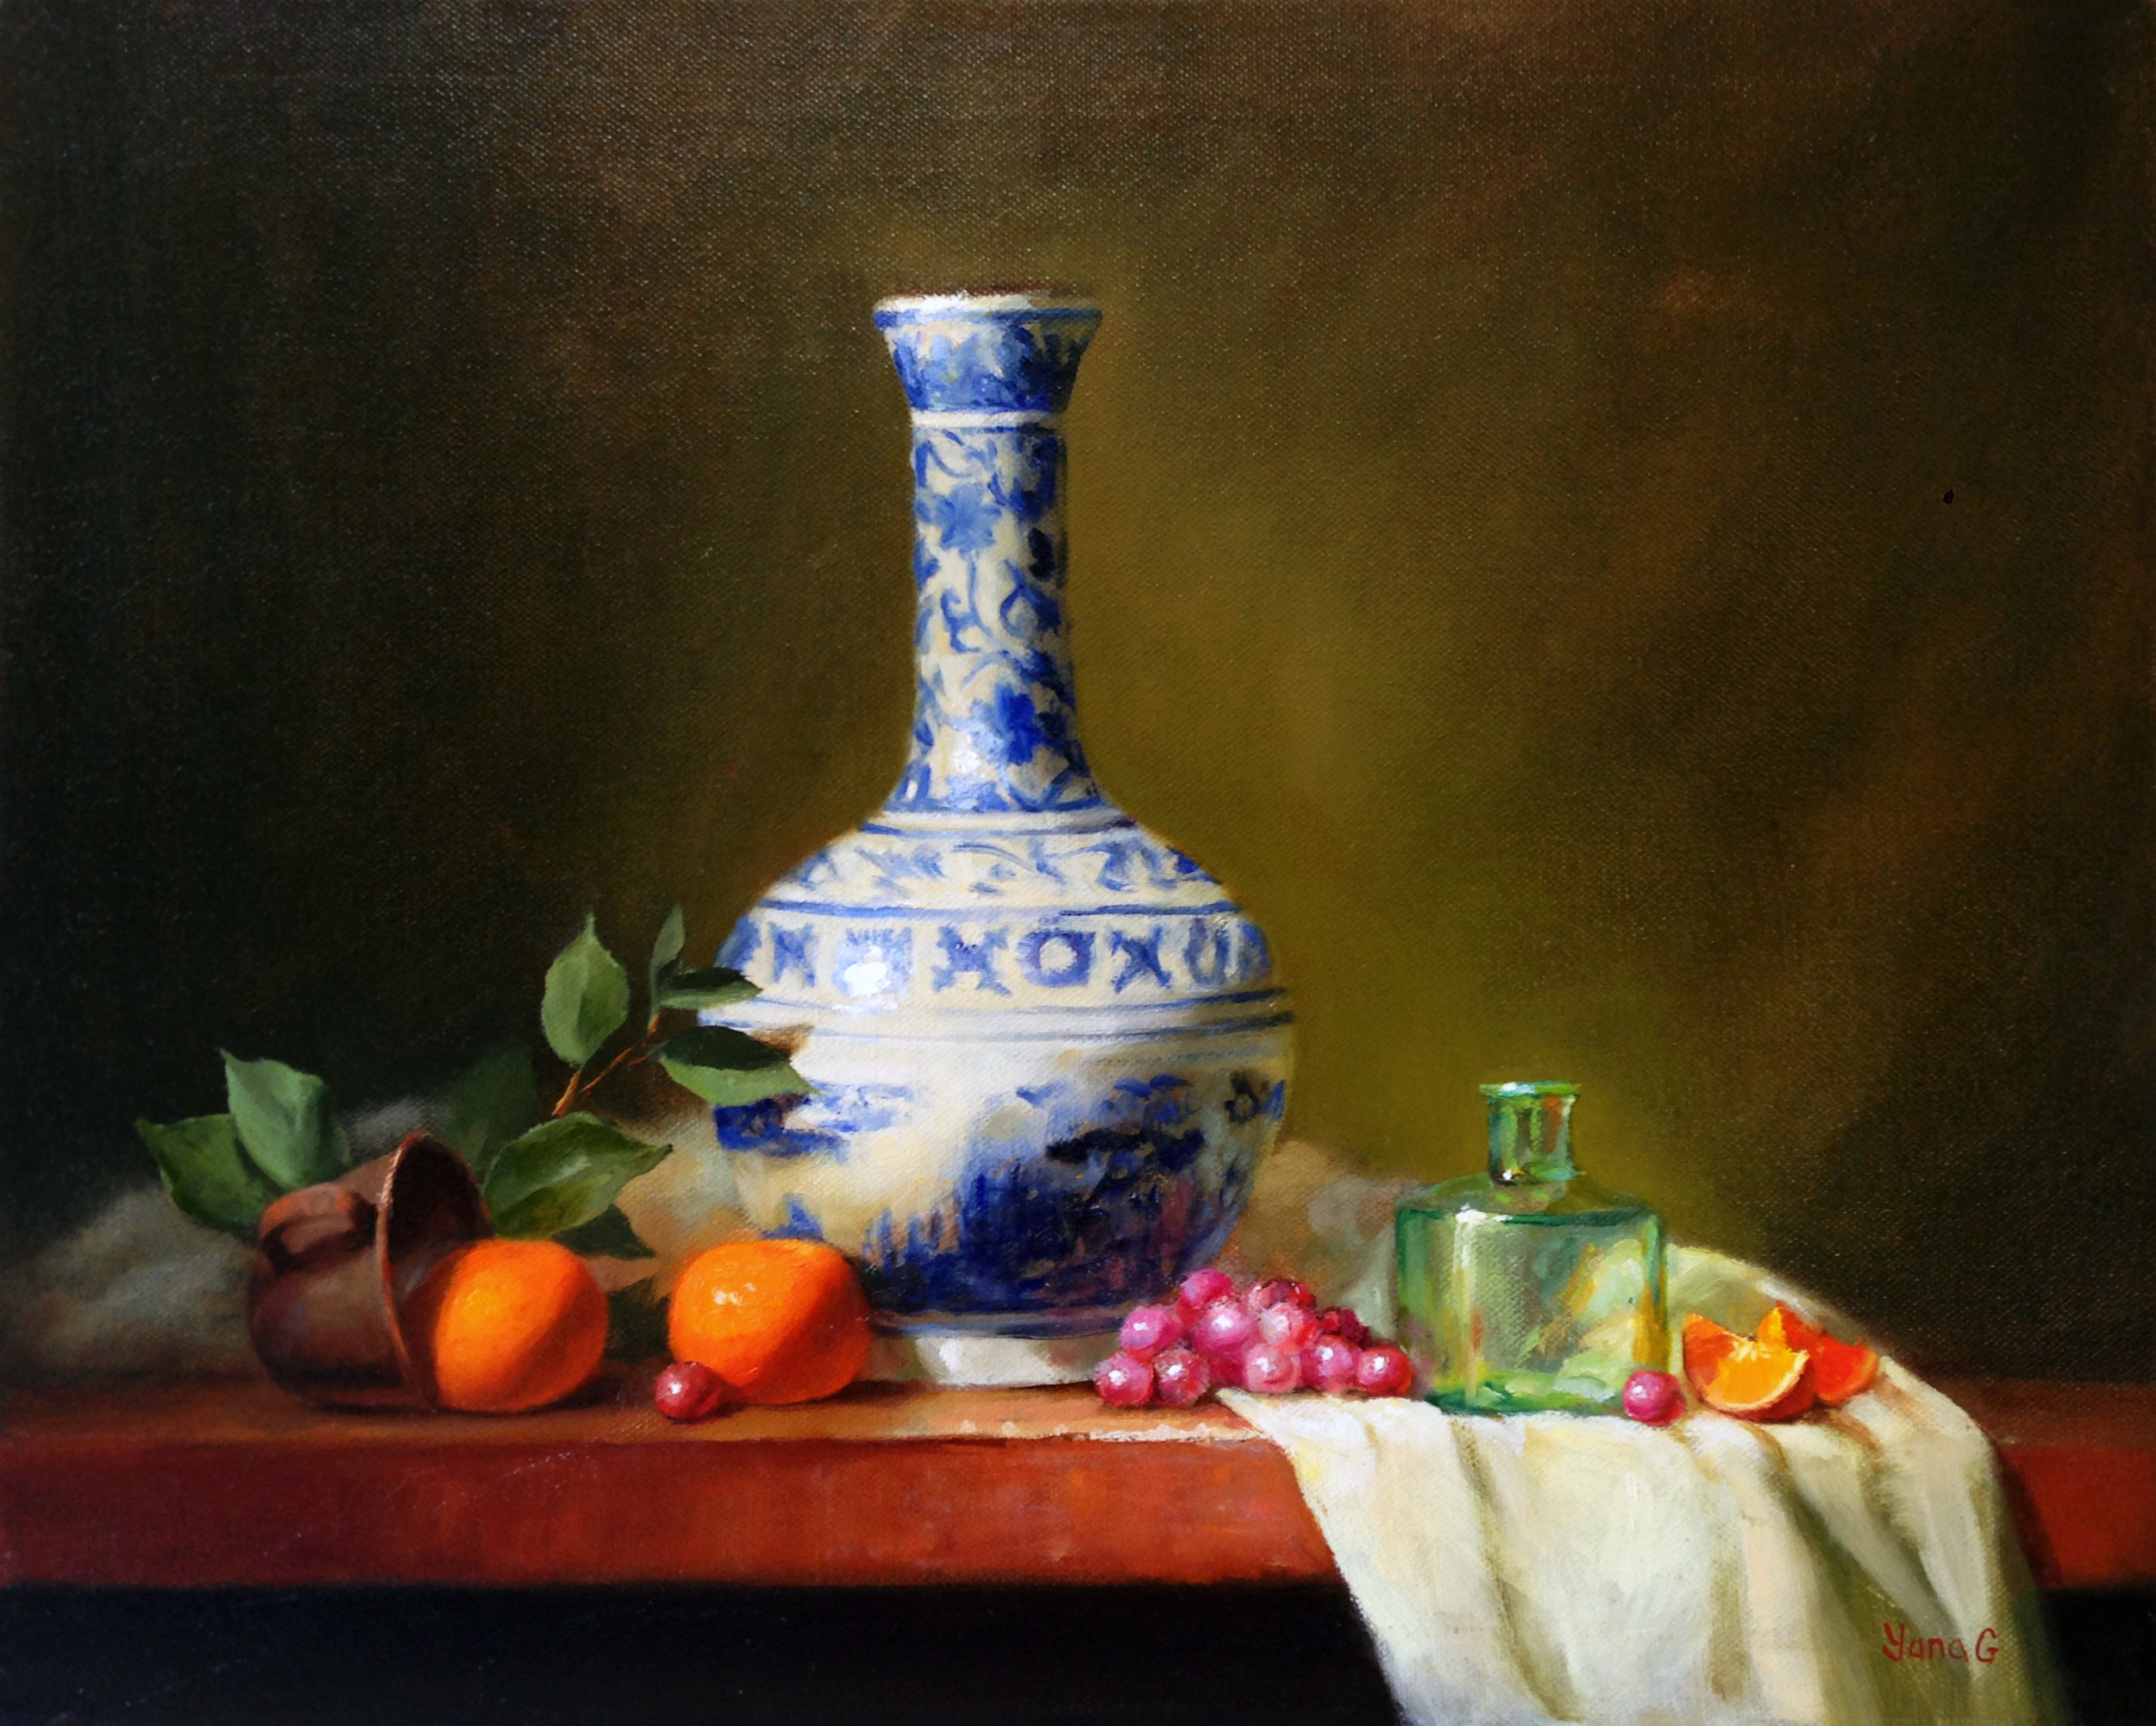 Still Life with Tall Vase 16x20 oil on canvas